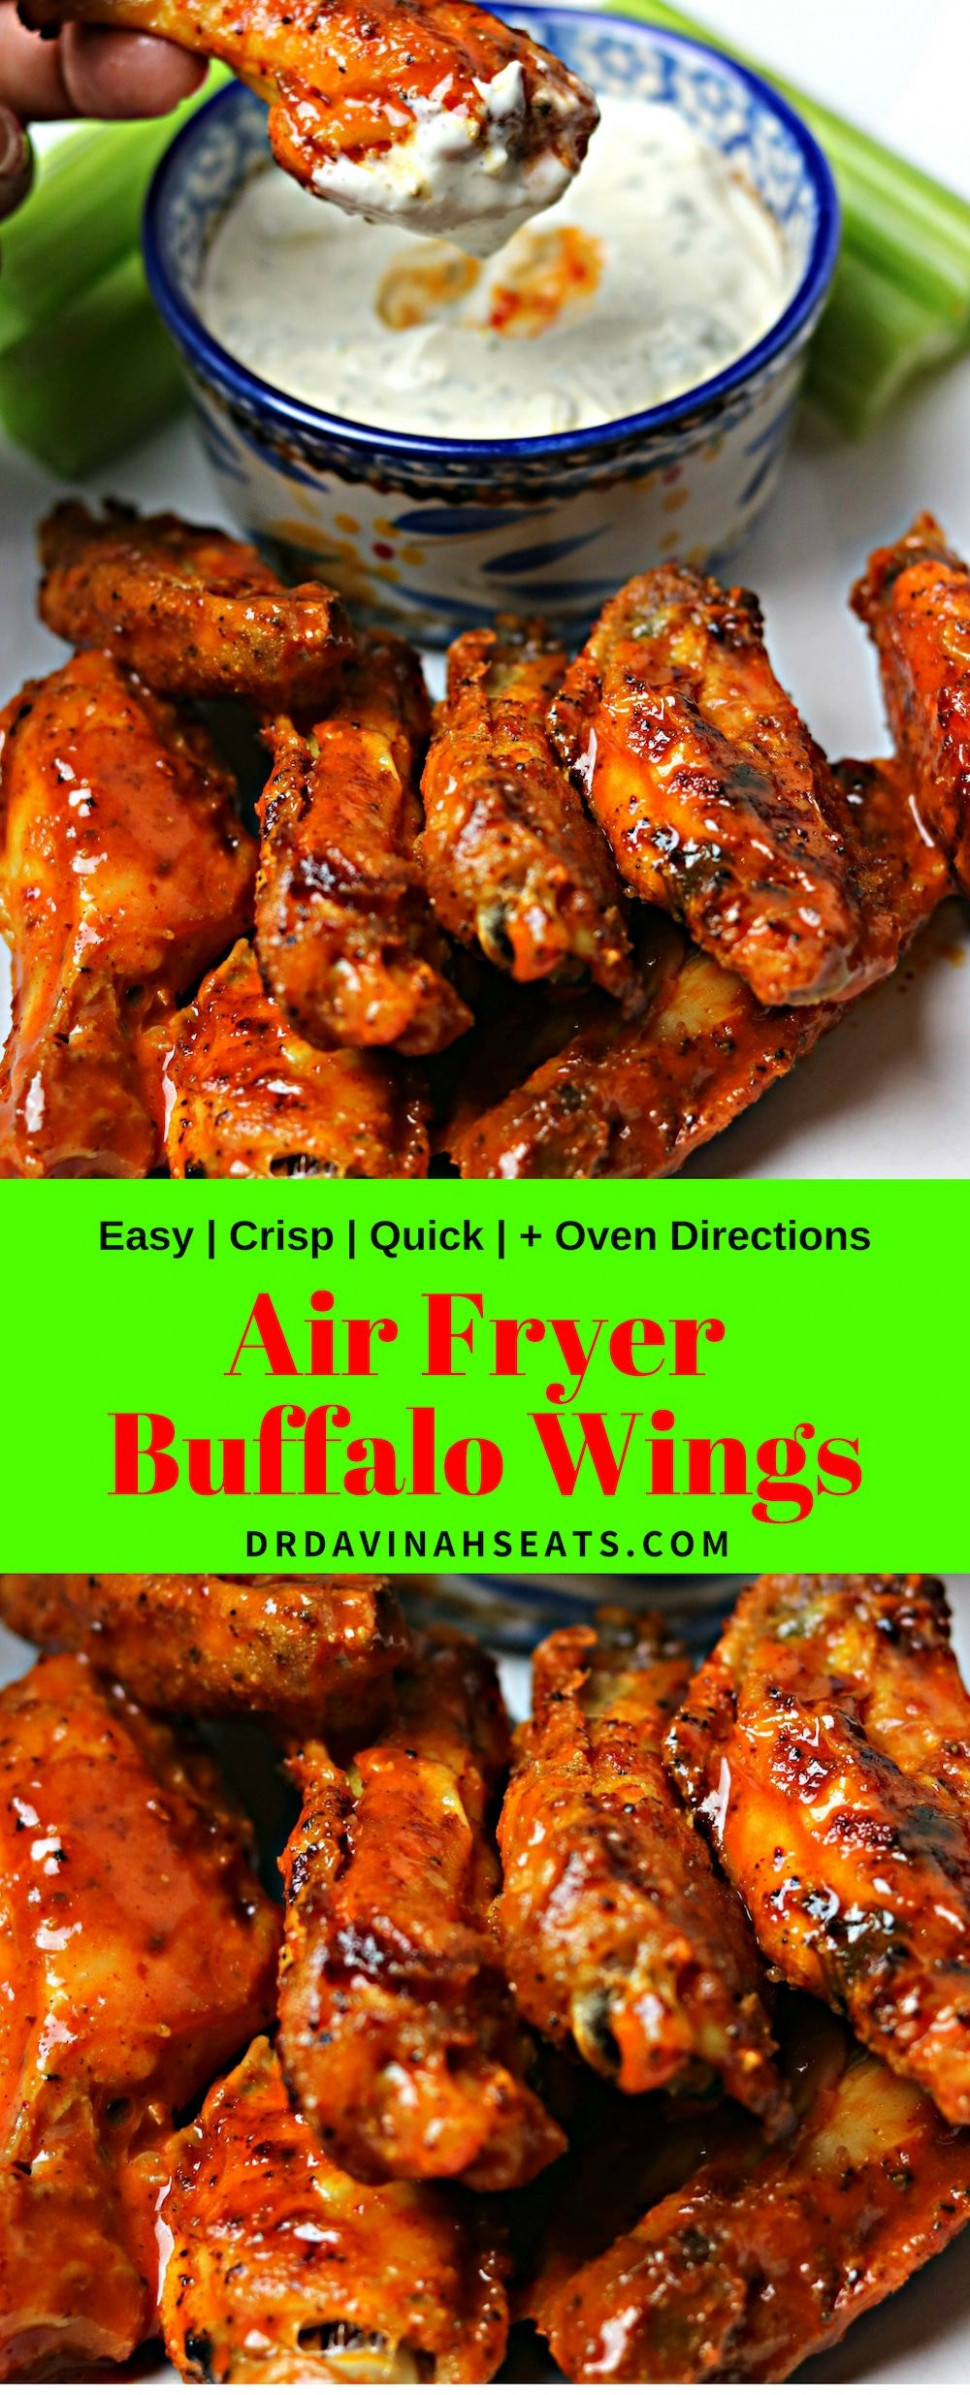 Air Fryer Buffalo Wings w/ Homemade Blue Cheese Dressing - air fryer recipes chicken wings